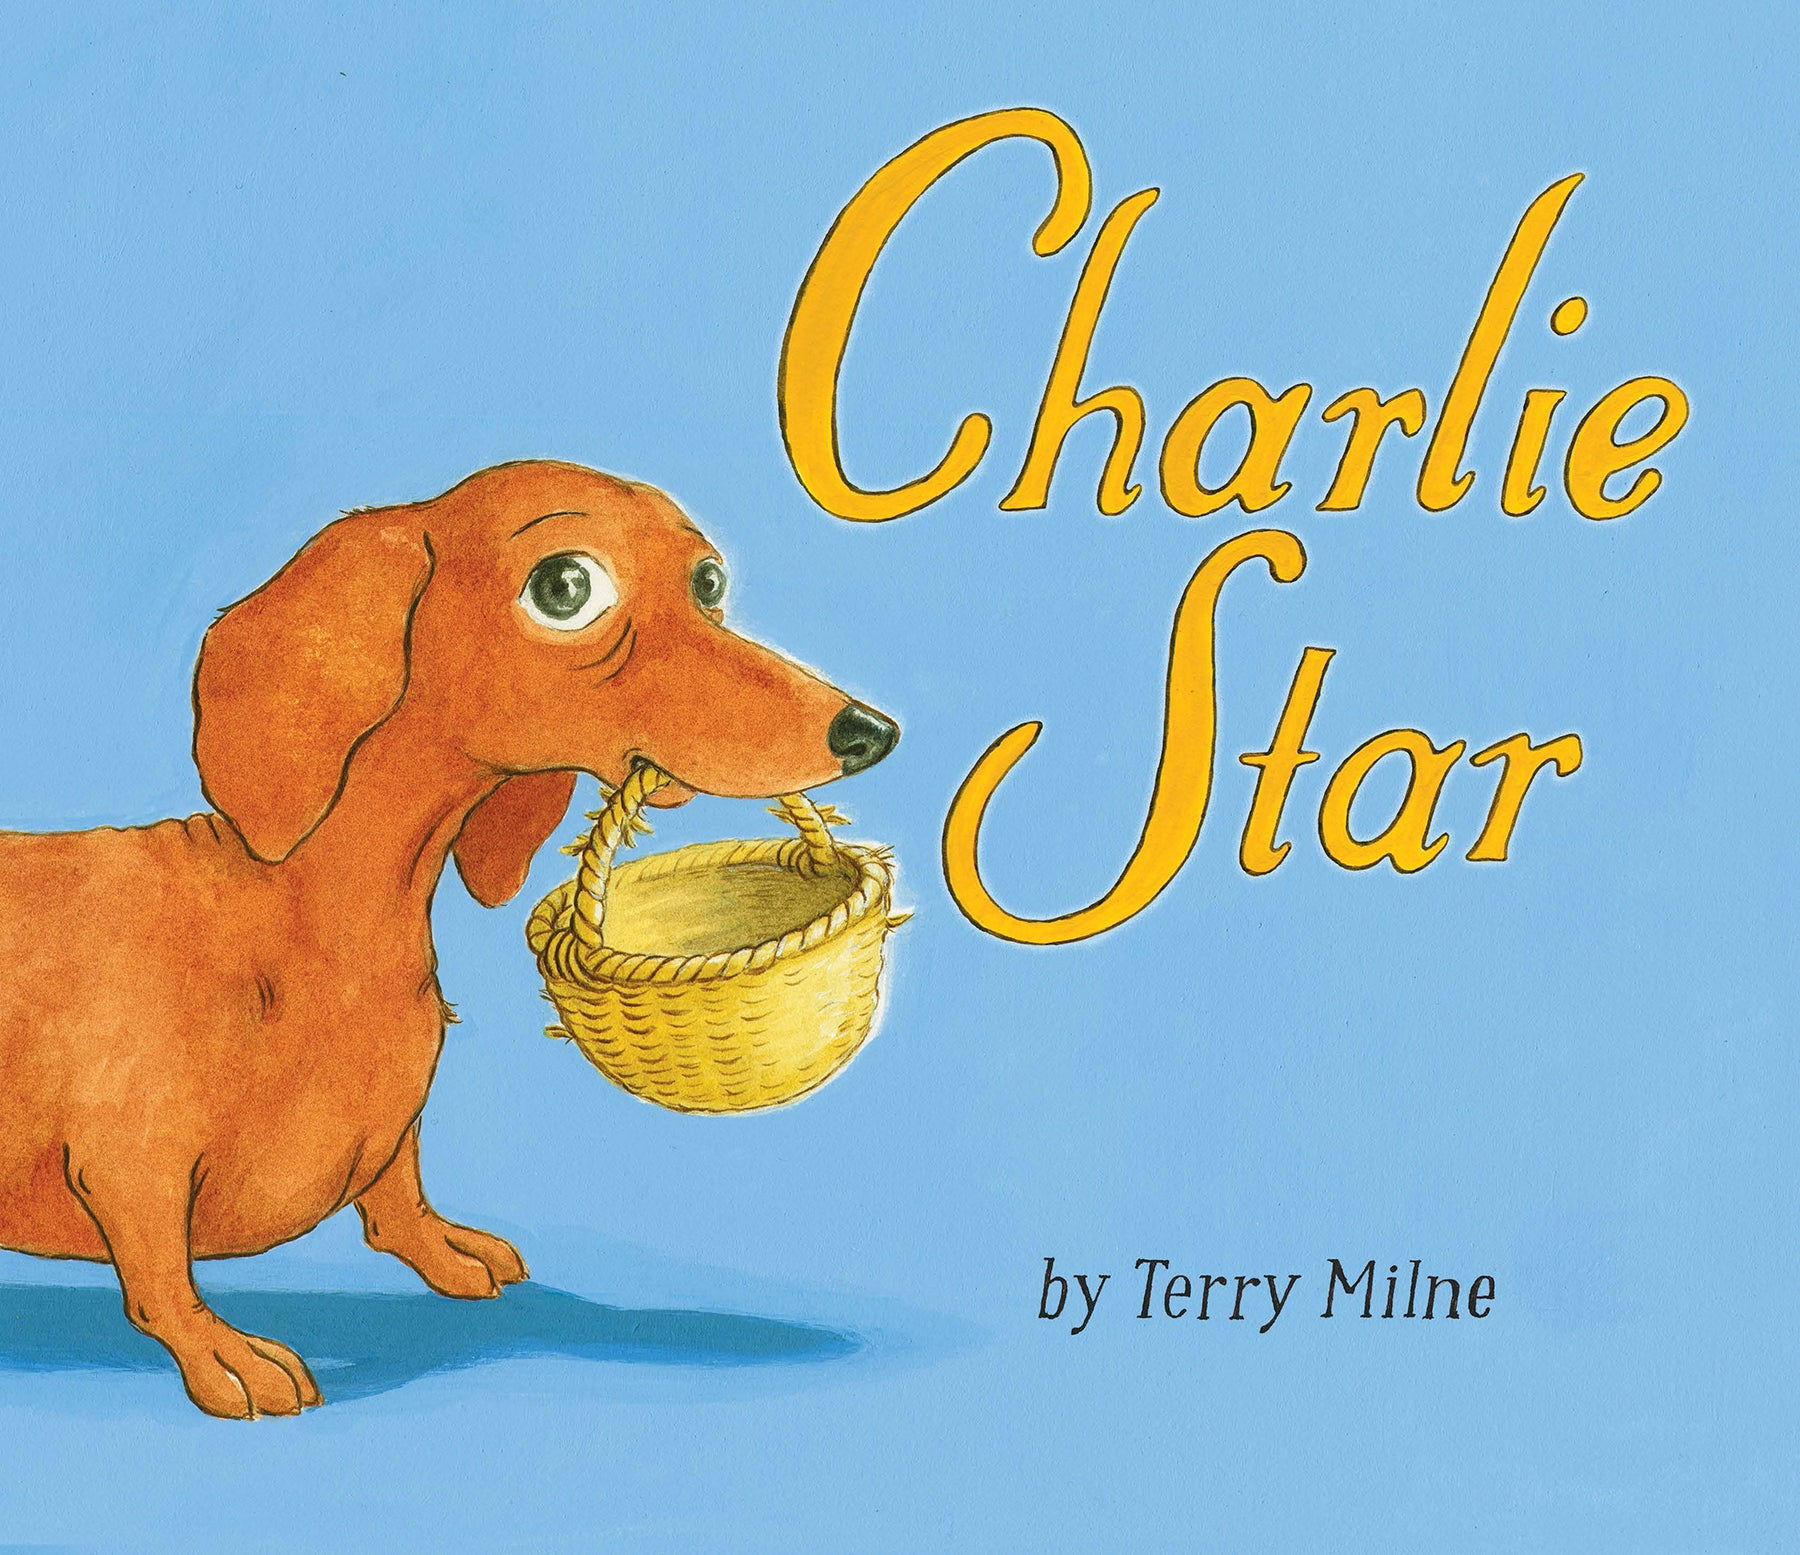 Charlie Star by Terry Milne